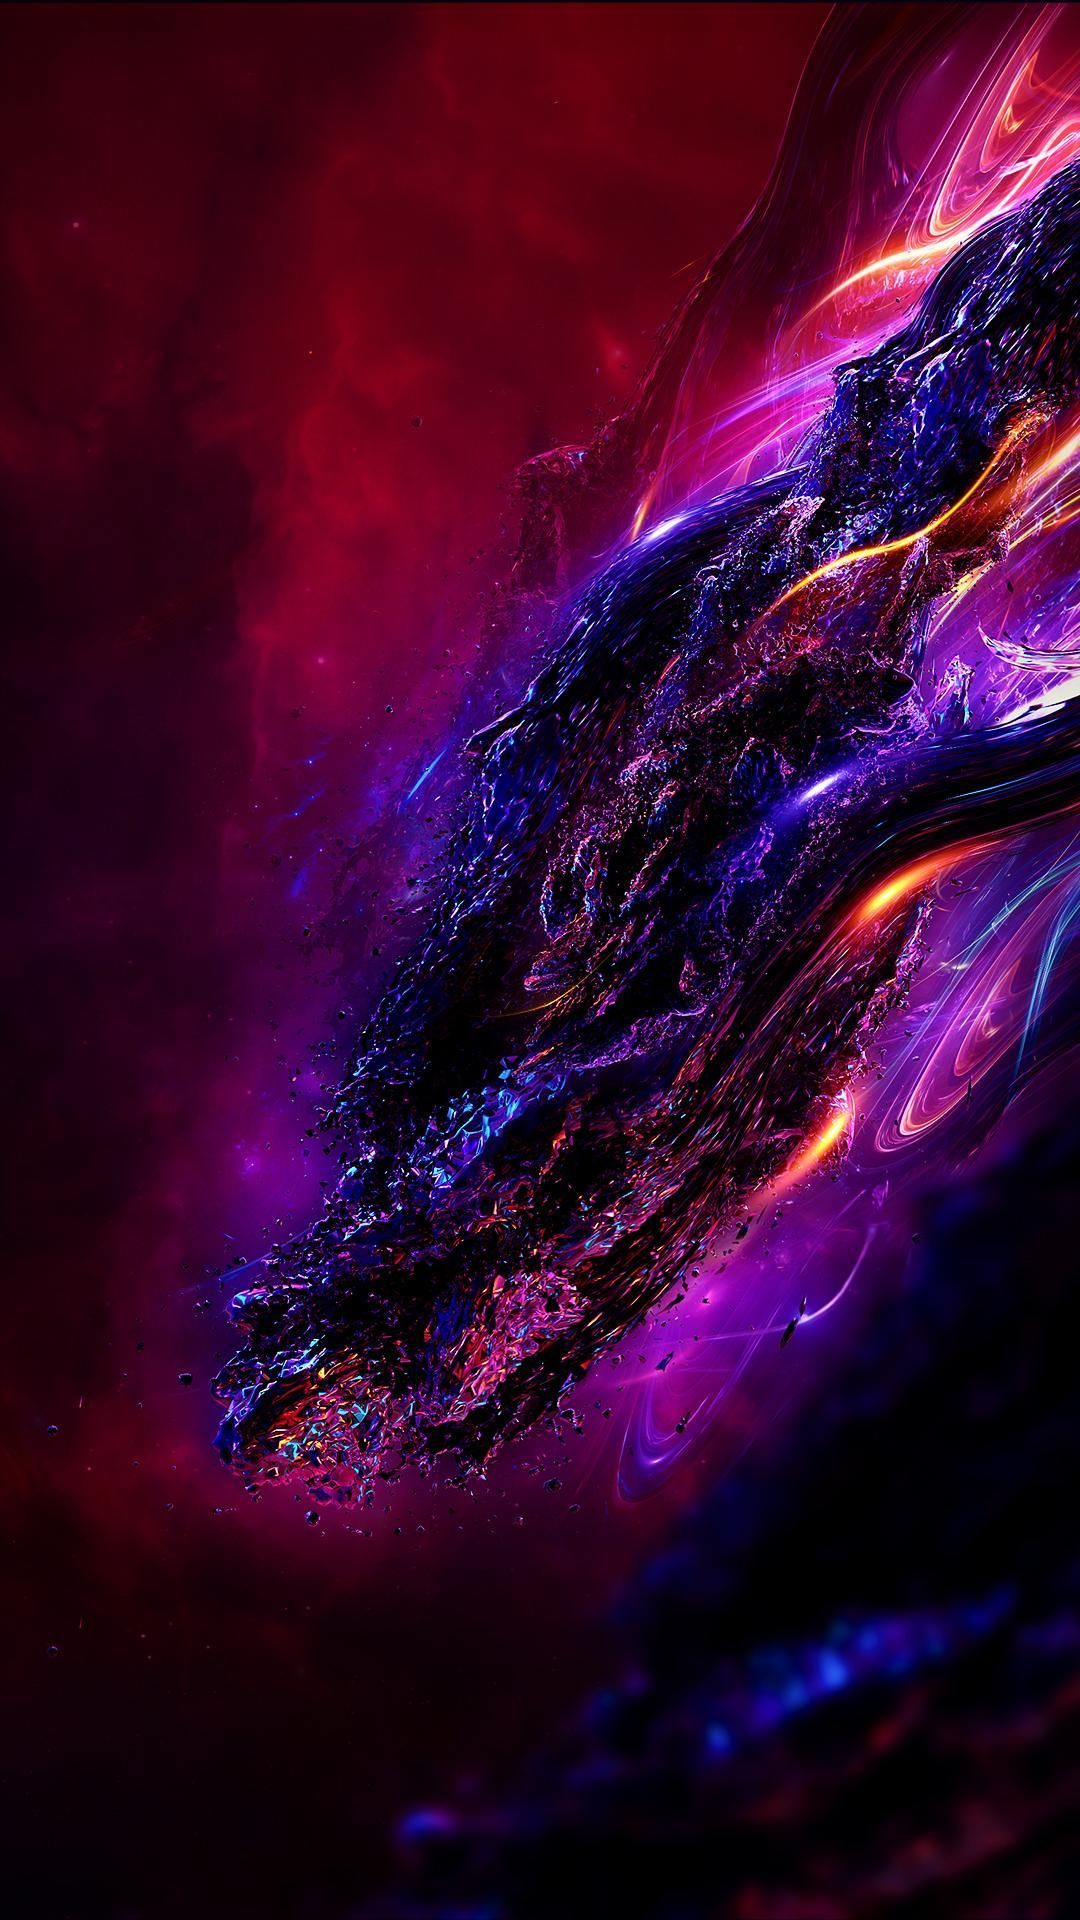 Cool Iphone Wallpapers Iphone7 Iphone8 Space 4k Iphone 7 Wallpapers Best Iphone Wallpapers Original Iphone Wallpaper